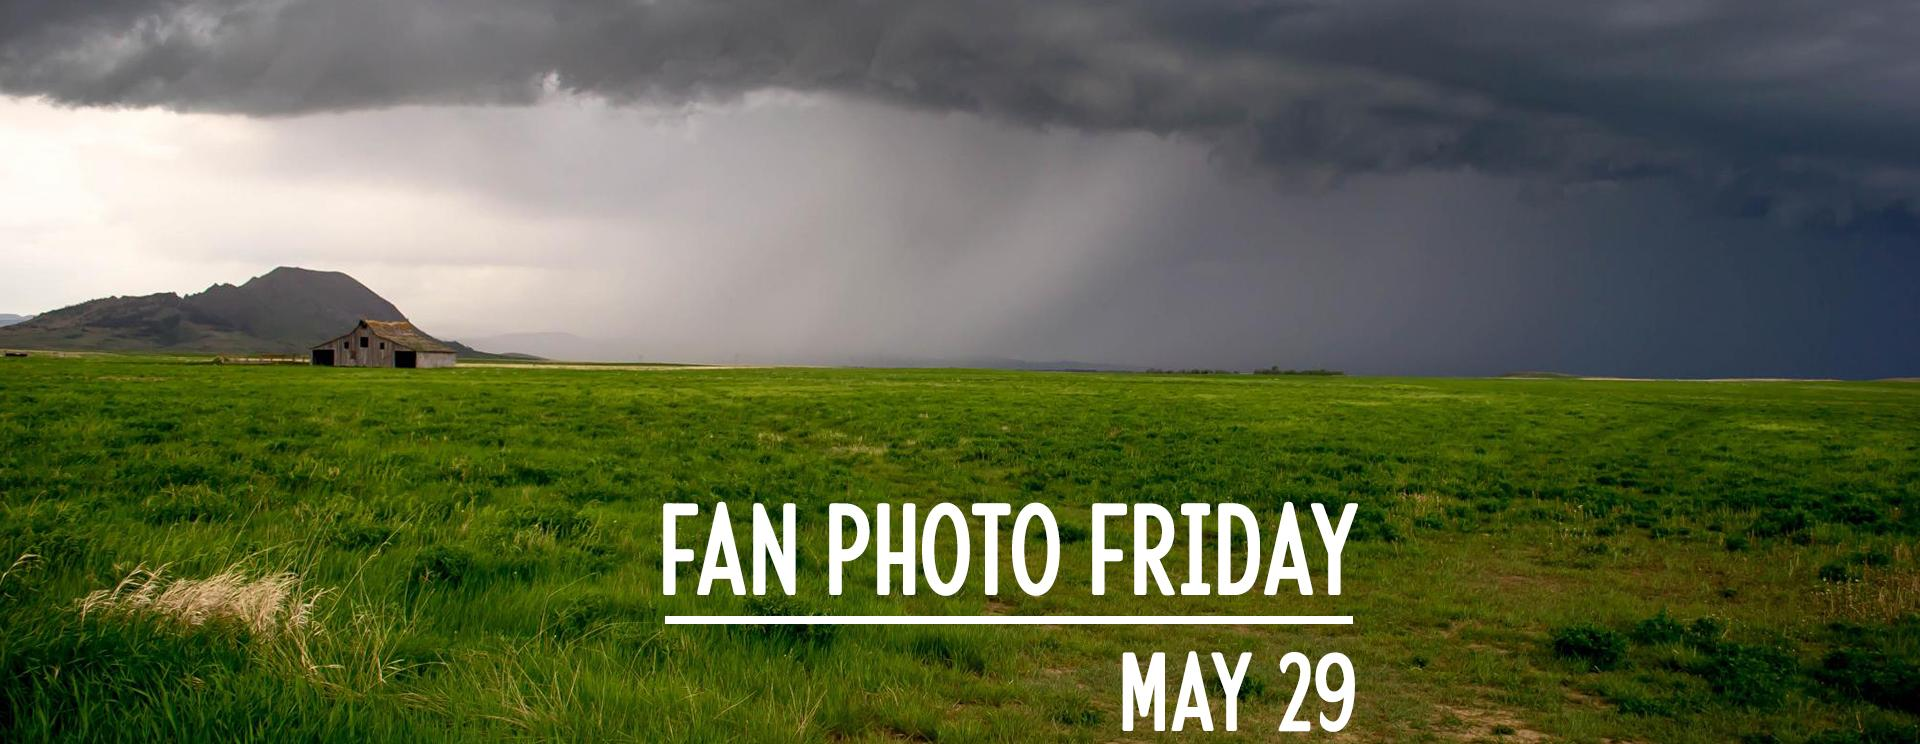 Fan Photo Friday | May 29, 2020